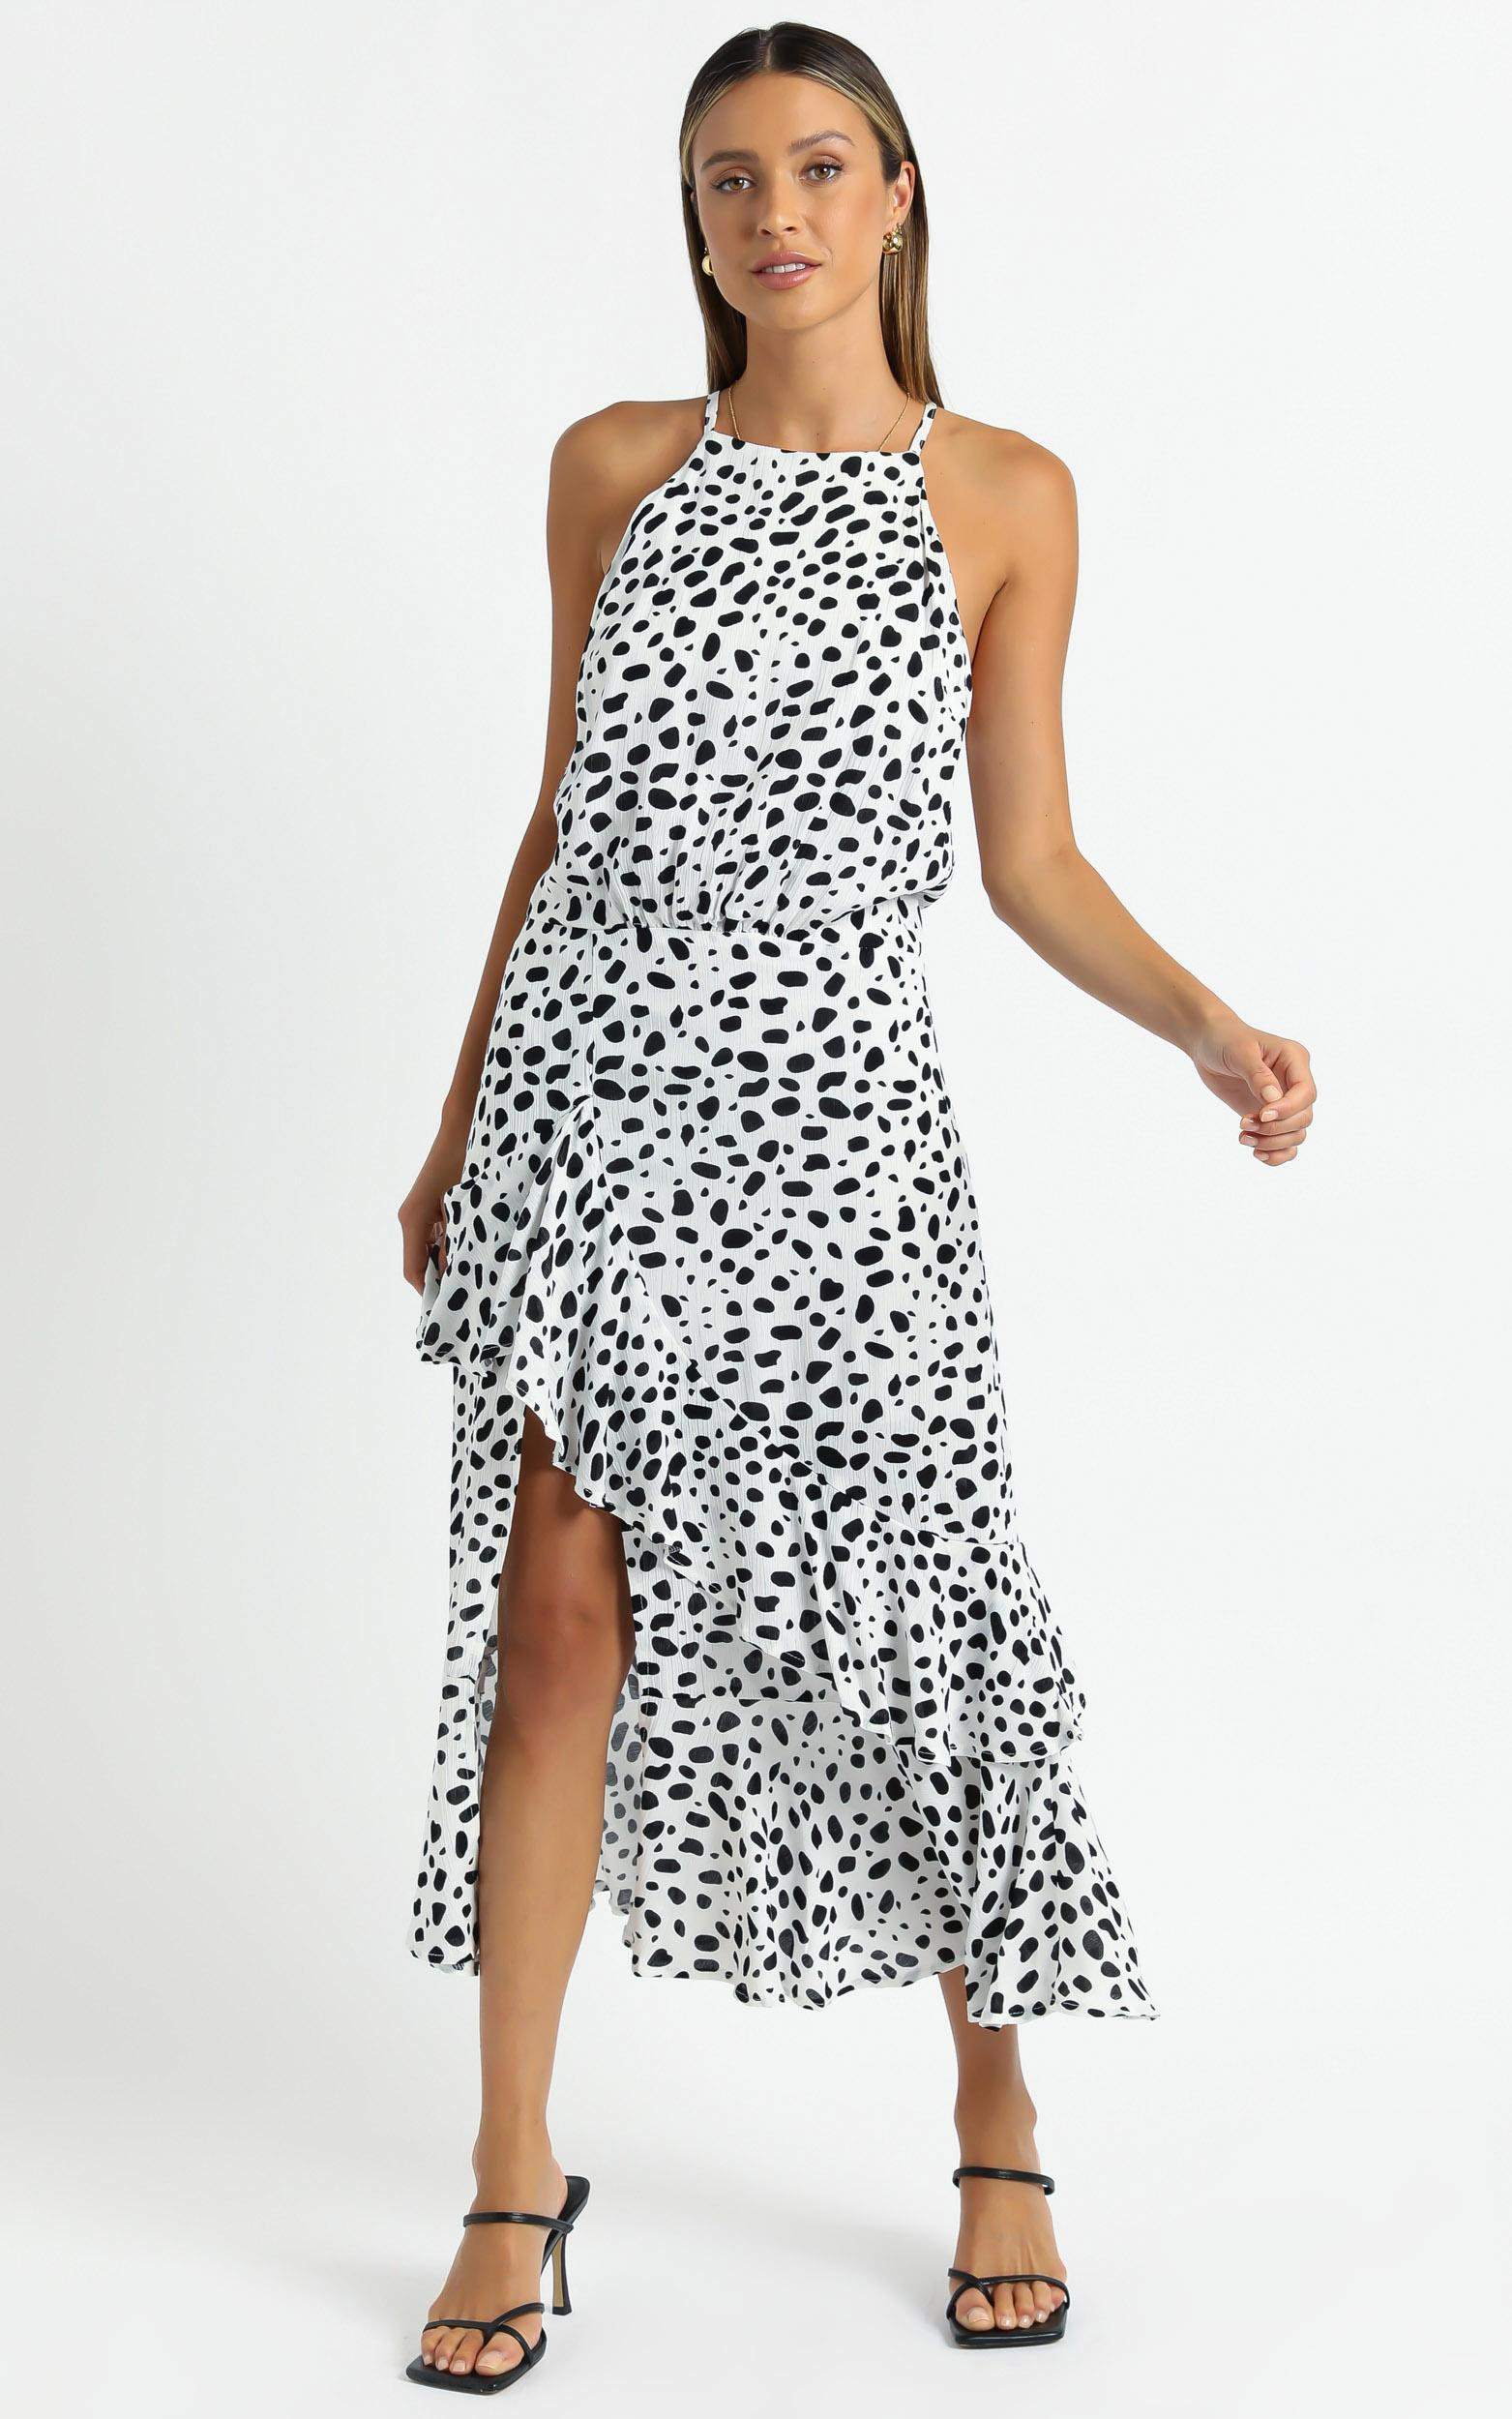 Rolly Dress in Dalmatian Print - 06, MLT1, hi-res image number null